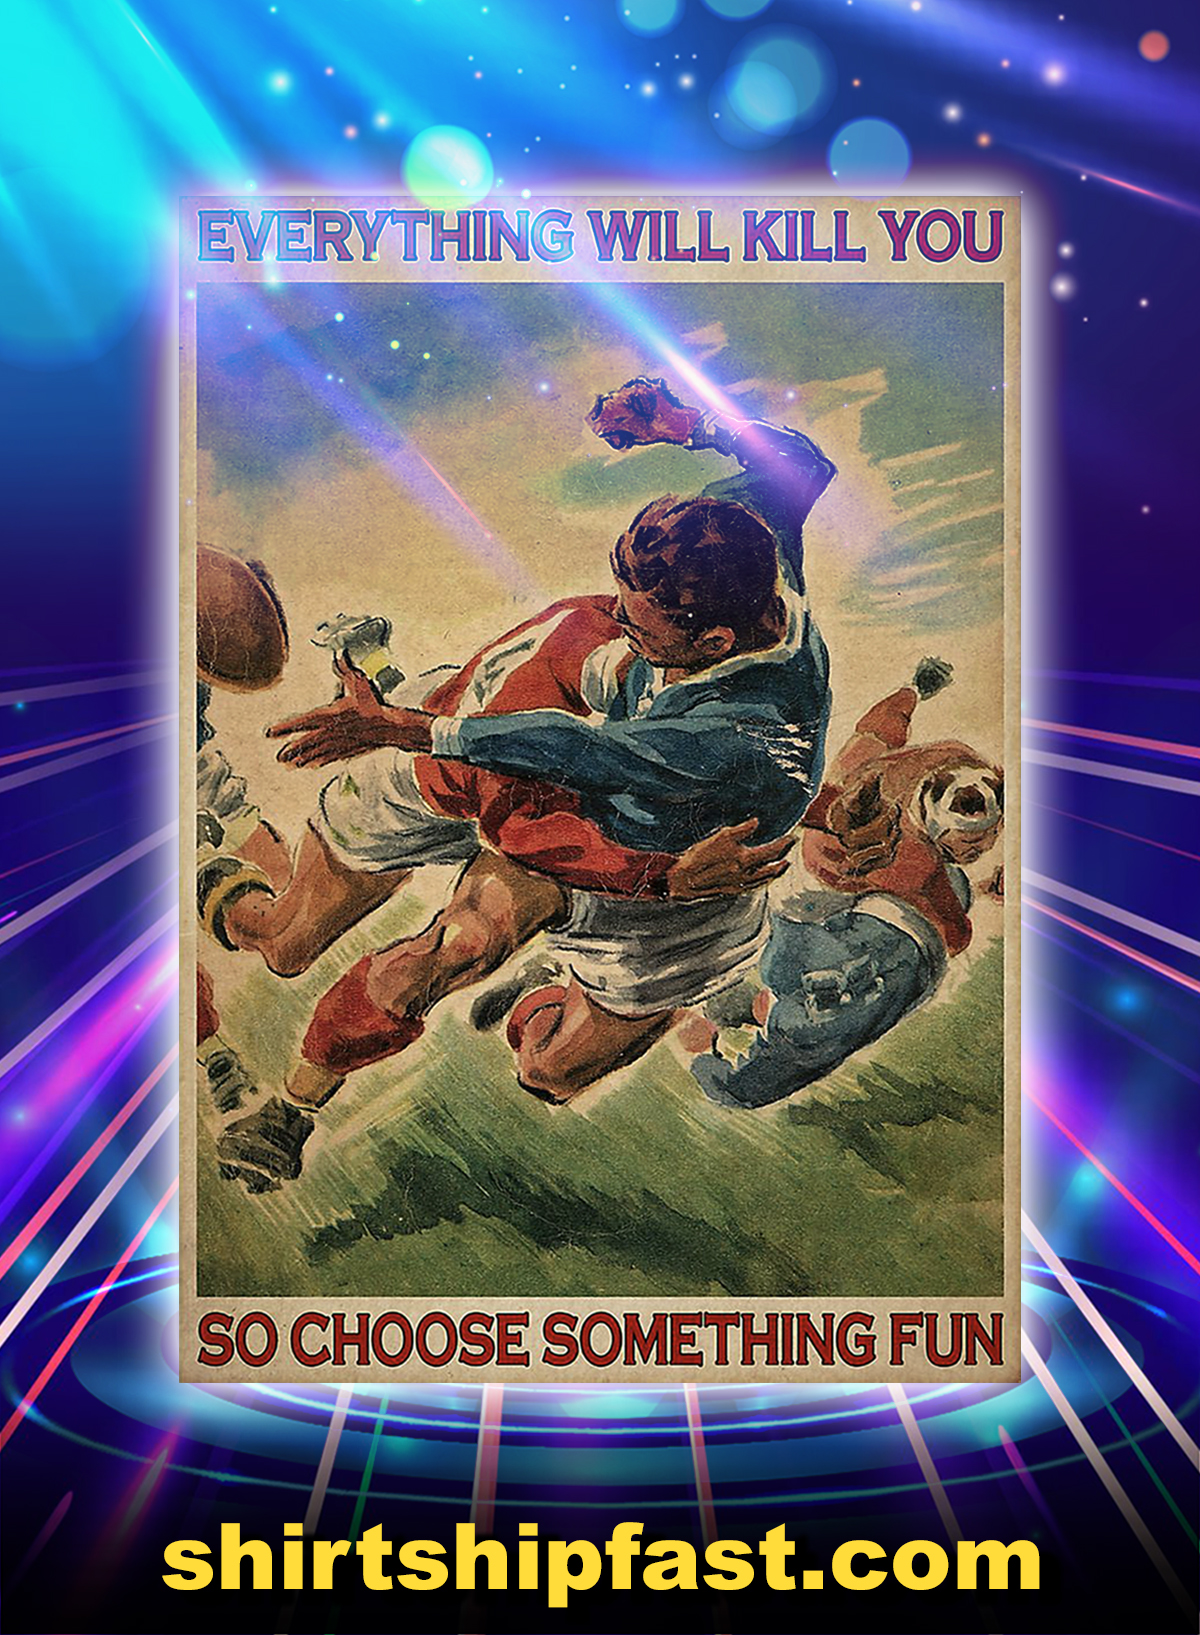 Rugby everything will kill you so choose something fun poster - A1